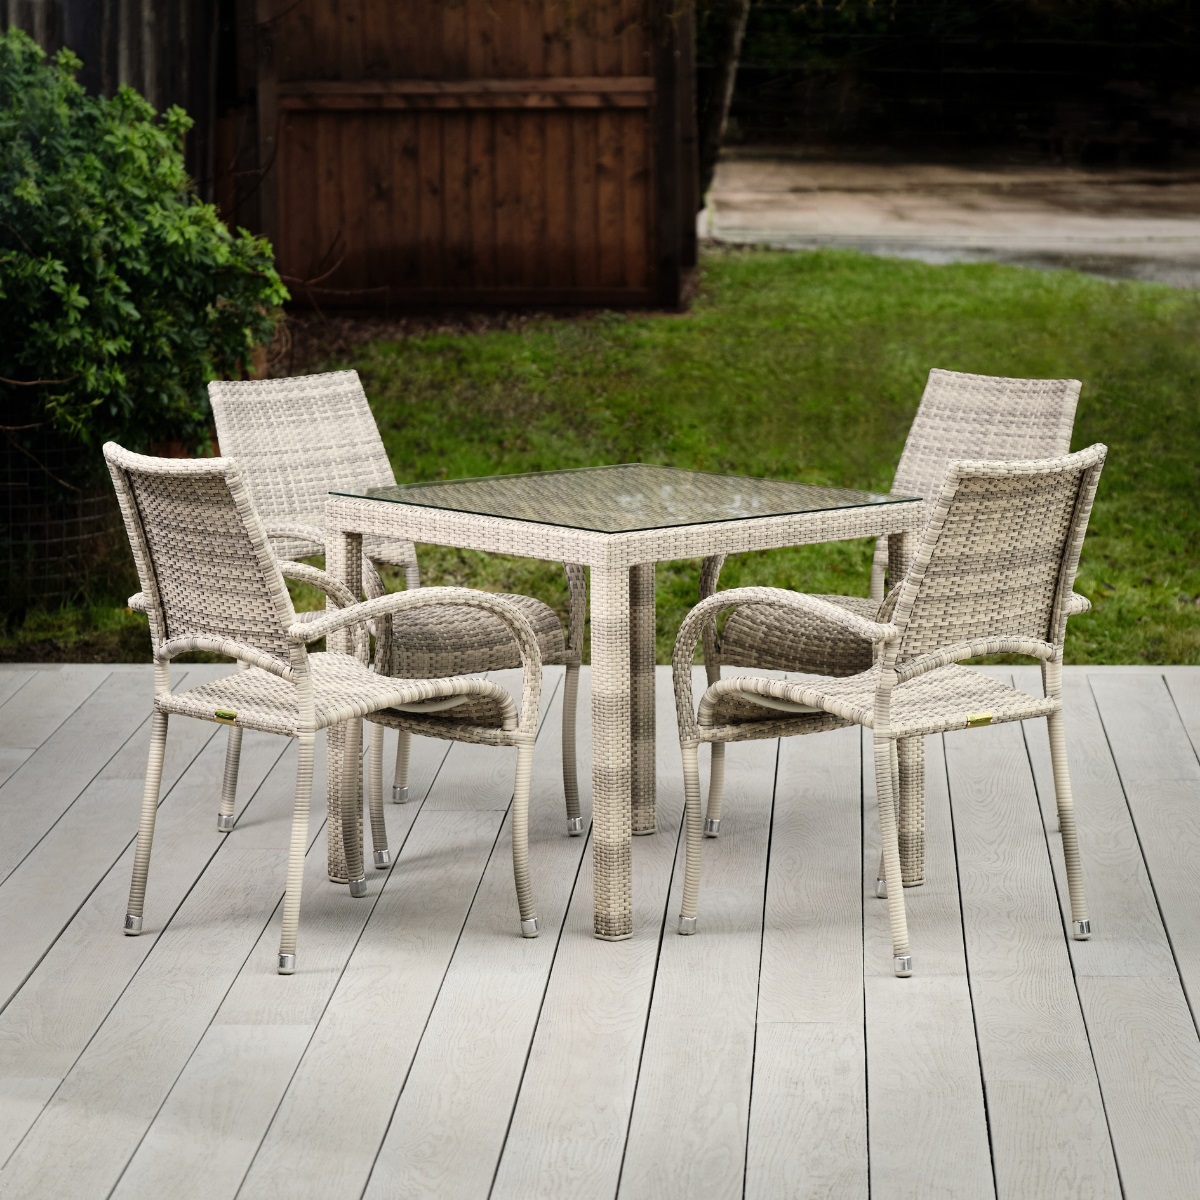 A cream and grey rattan outdoor square dining table and 4 matching chairs on a light grey deck